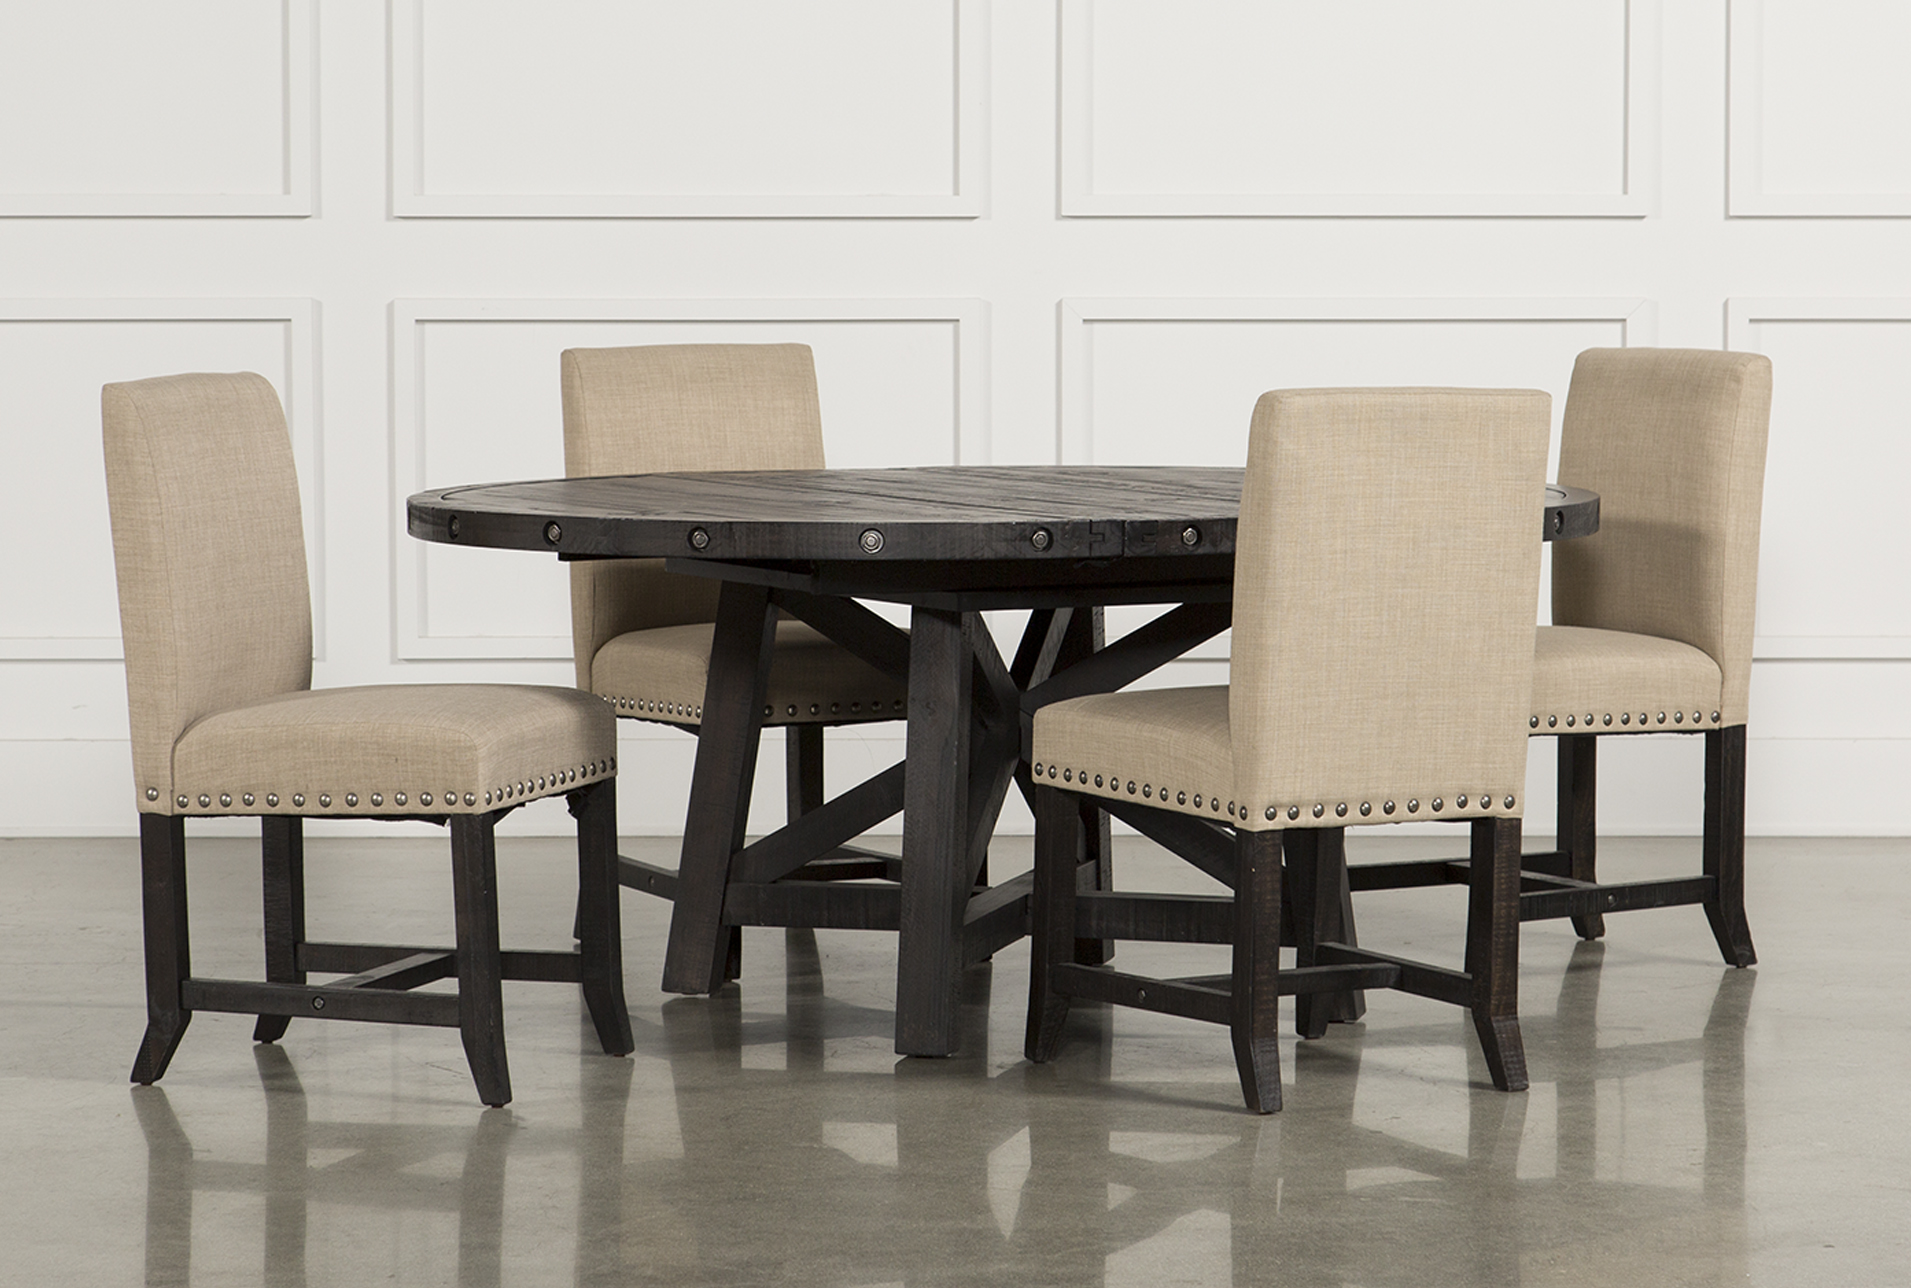 Jaxon 5 Piece Round Dining Set W/Upholstered Chairs   360